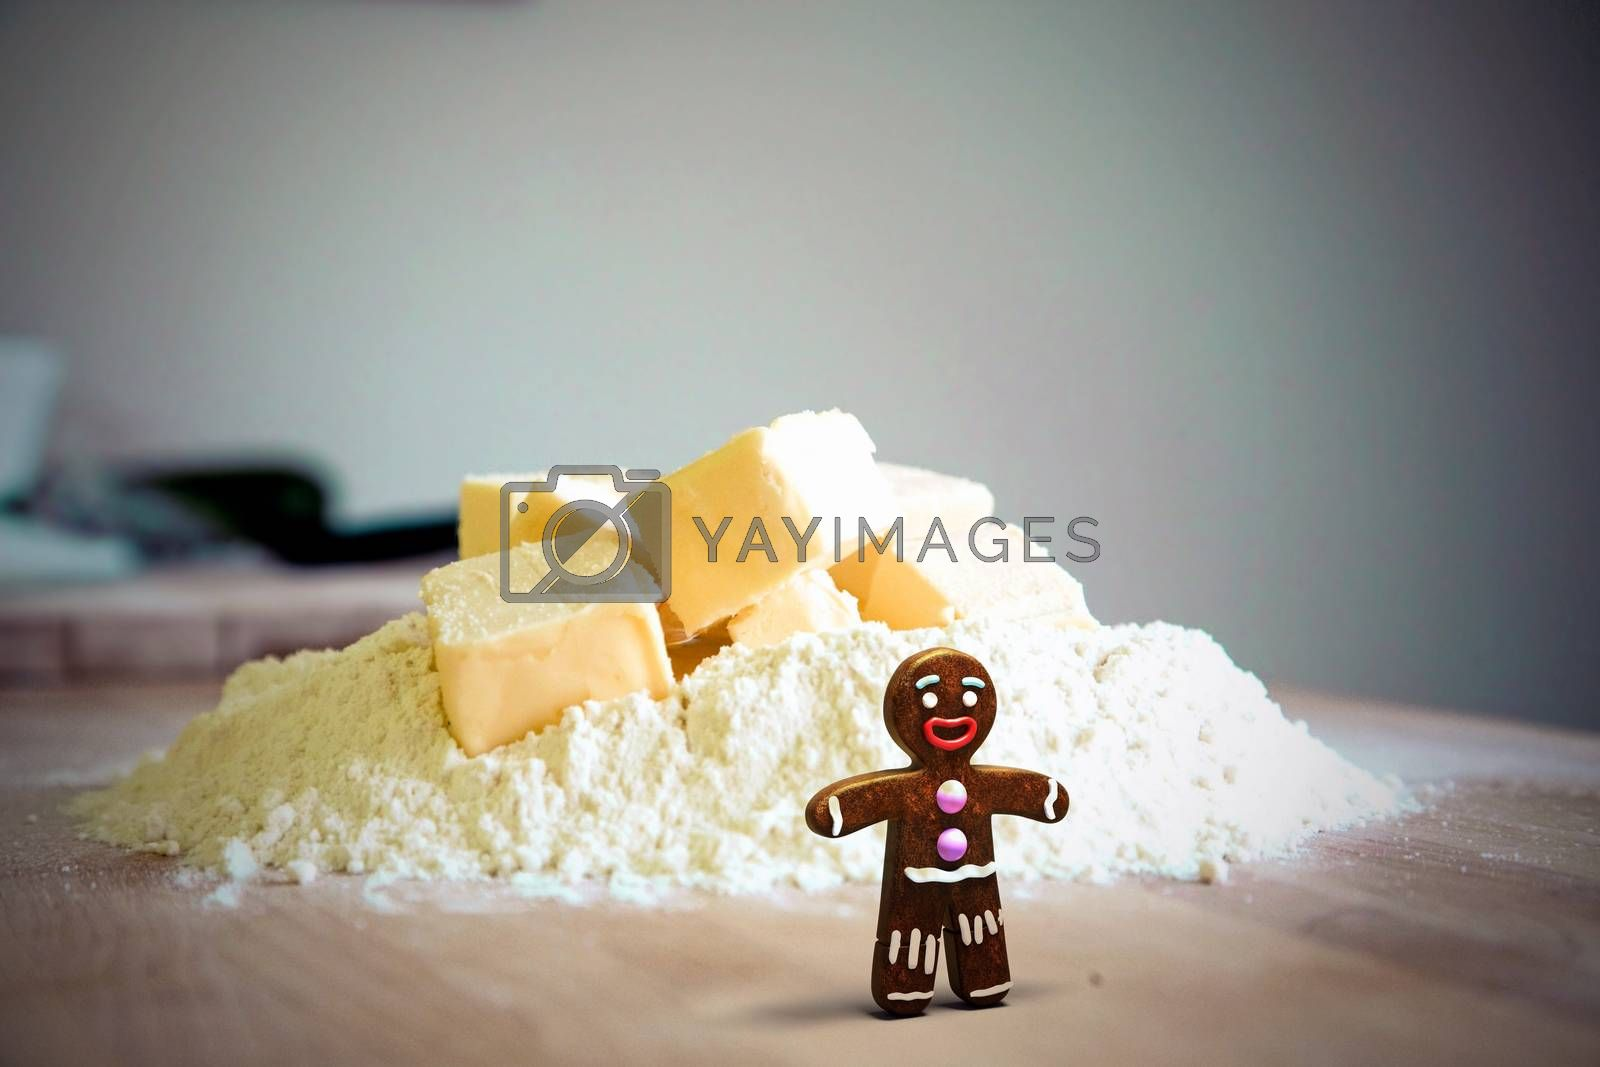 gingerbread man on kitchen table